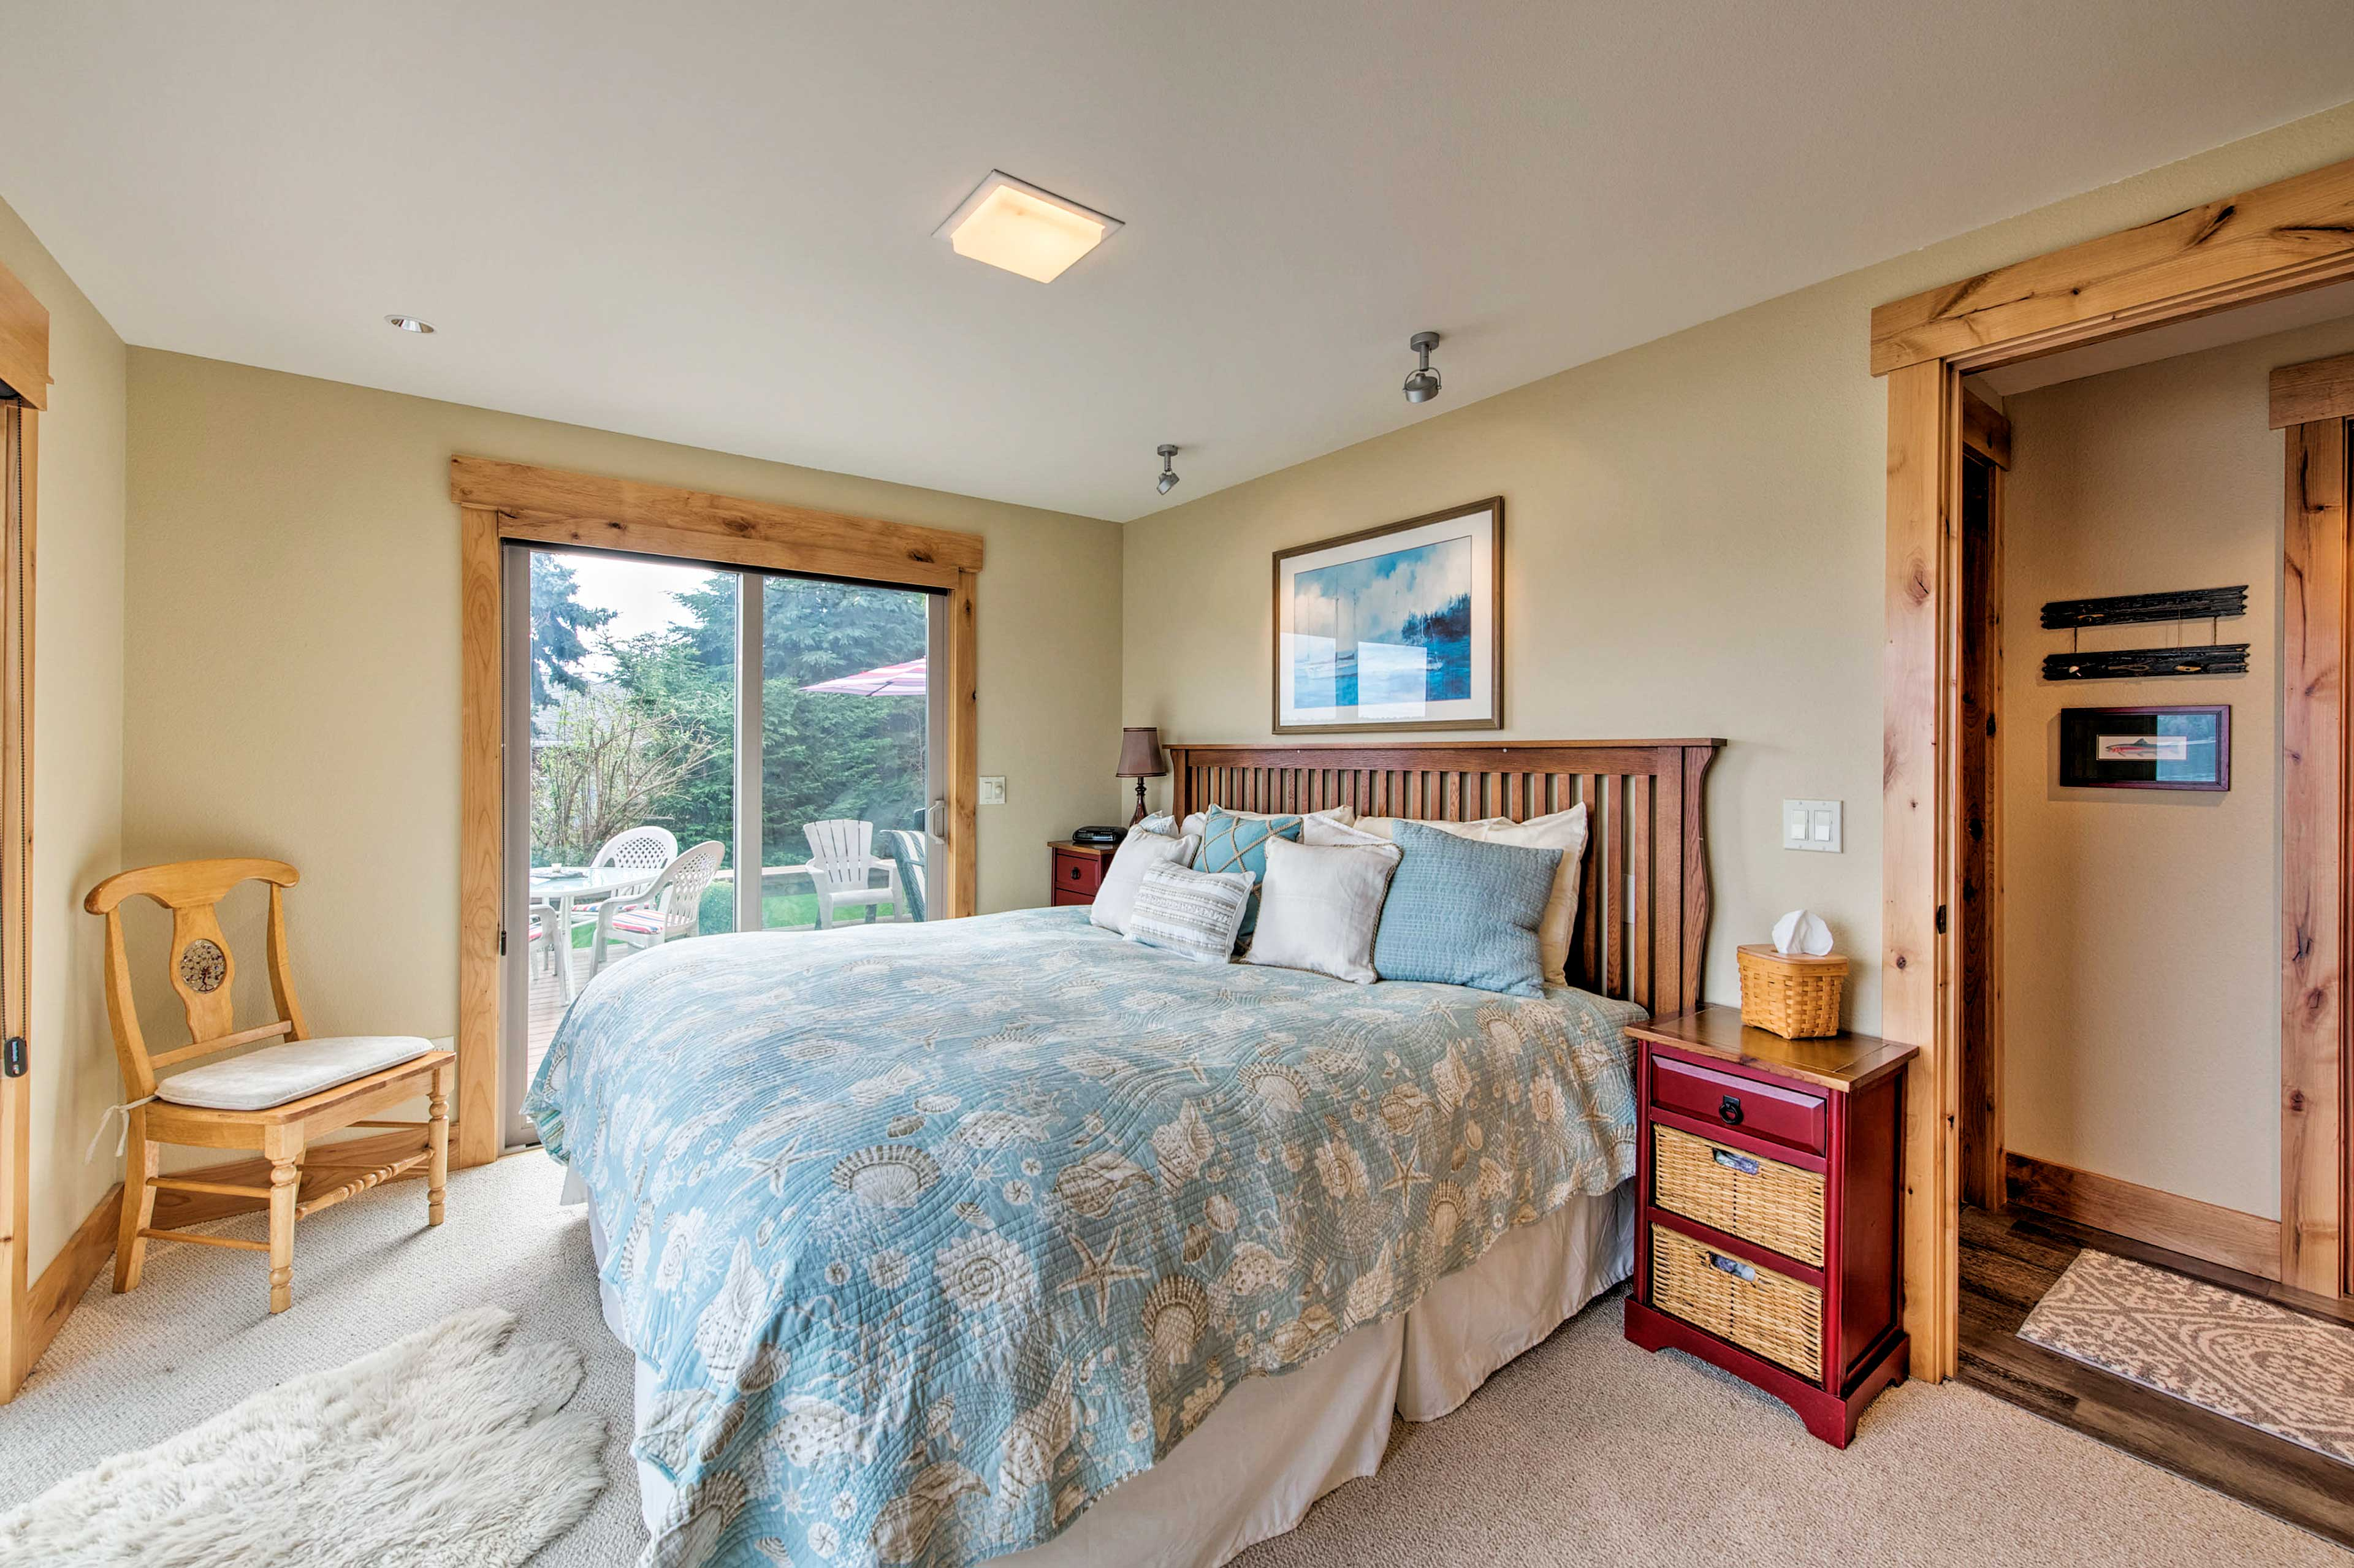 The master bedroom boasts a king bed and its own private deck.